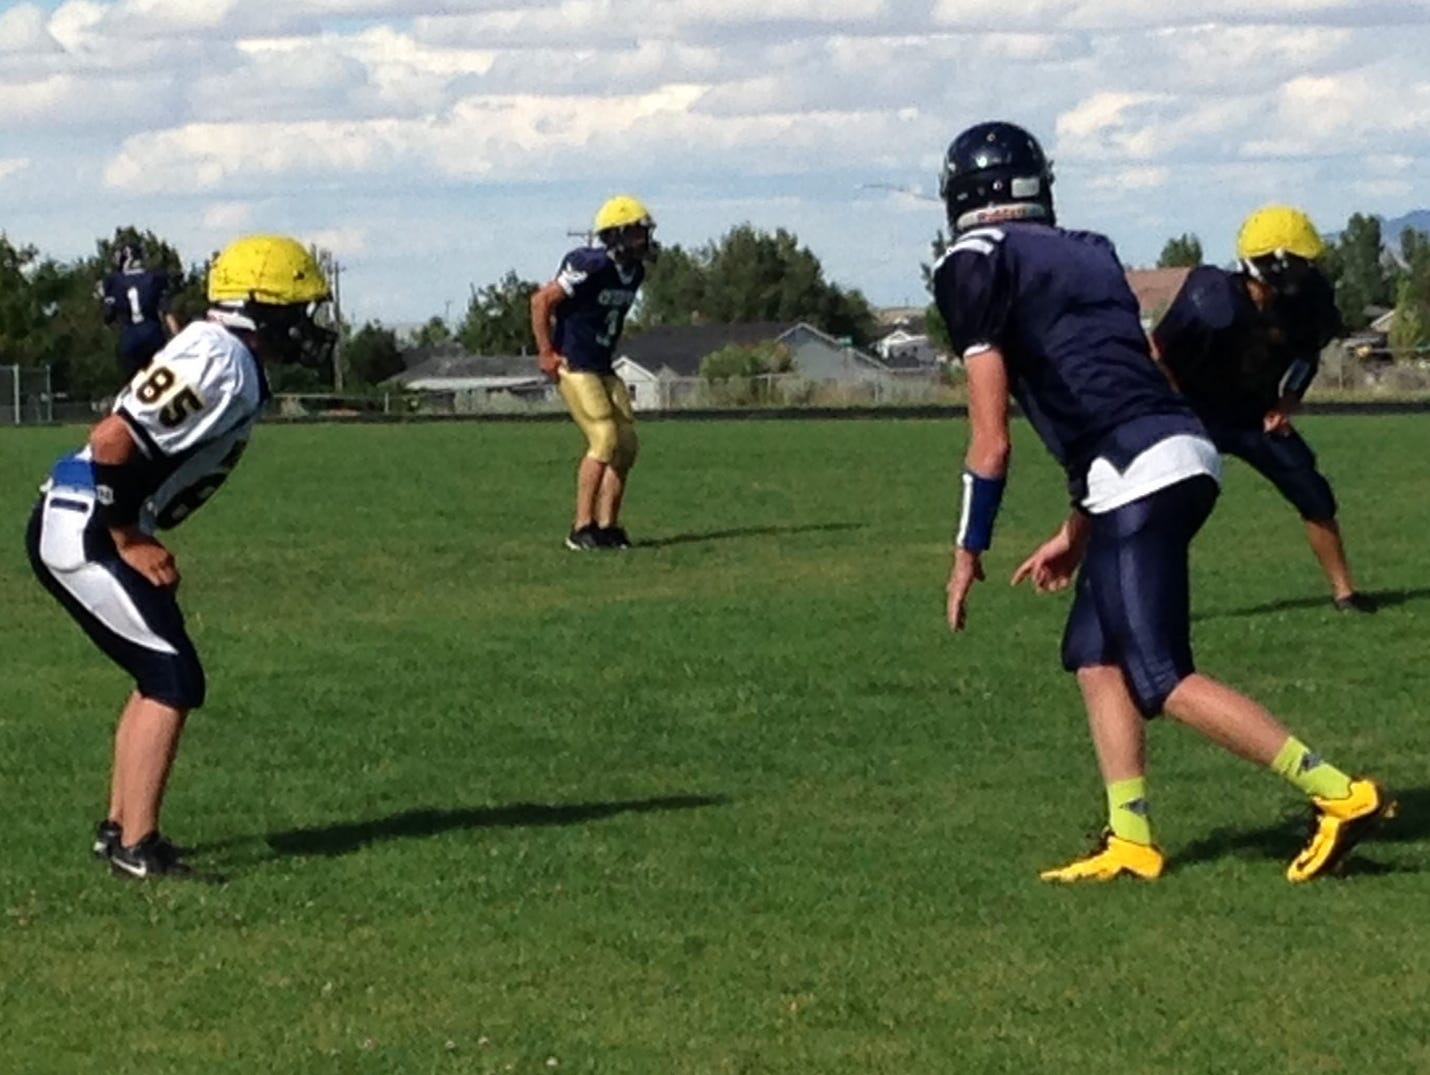 Enterprise Wolves bring in the no-huddle spread formation this season after years of running the Wing T.